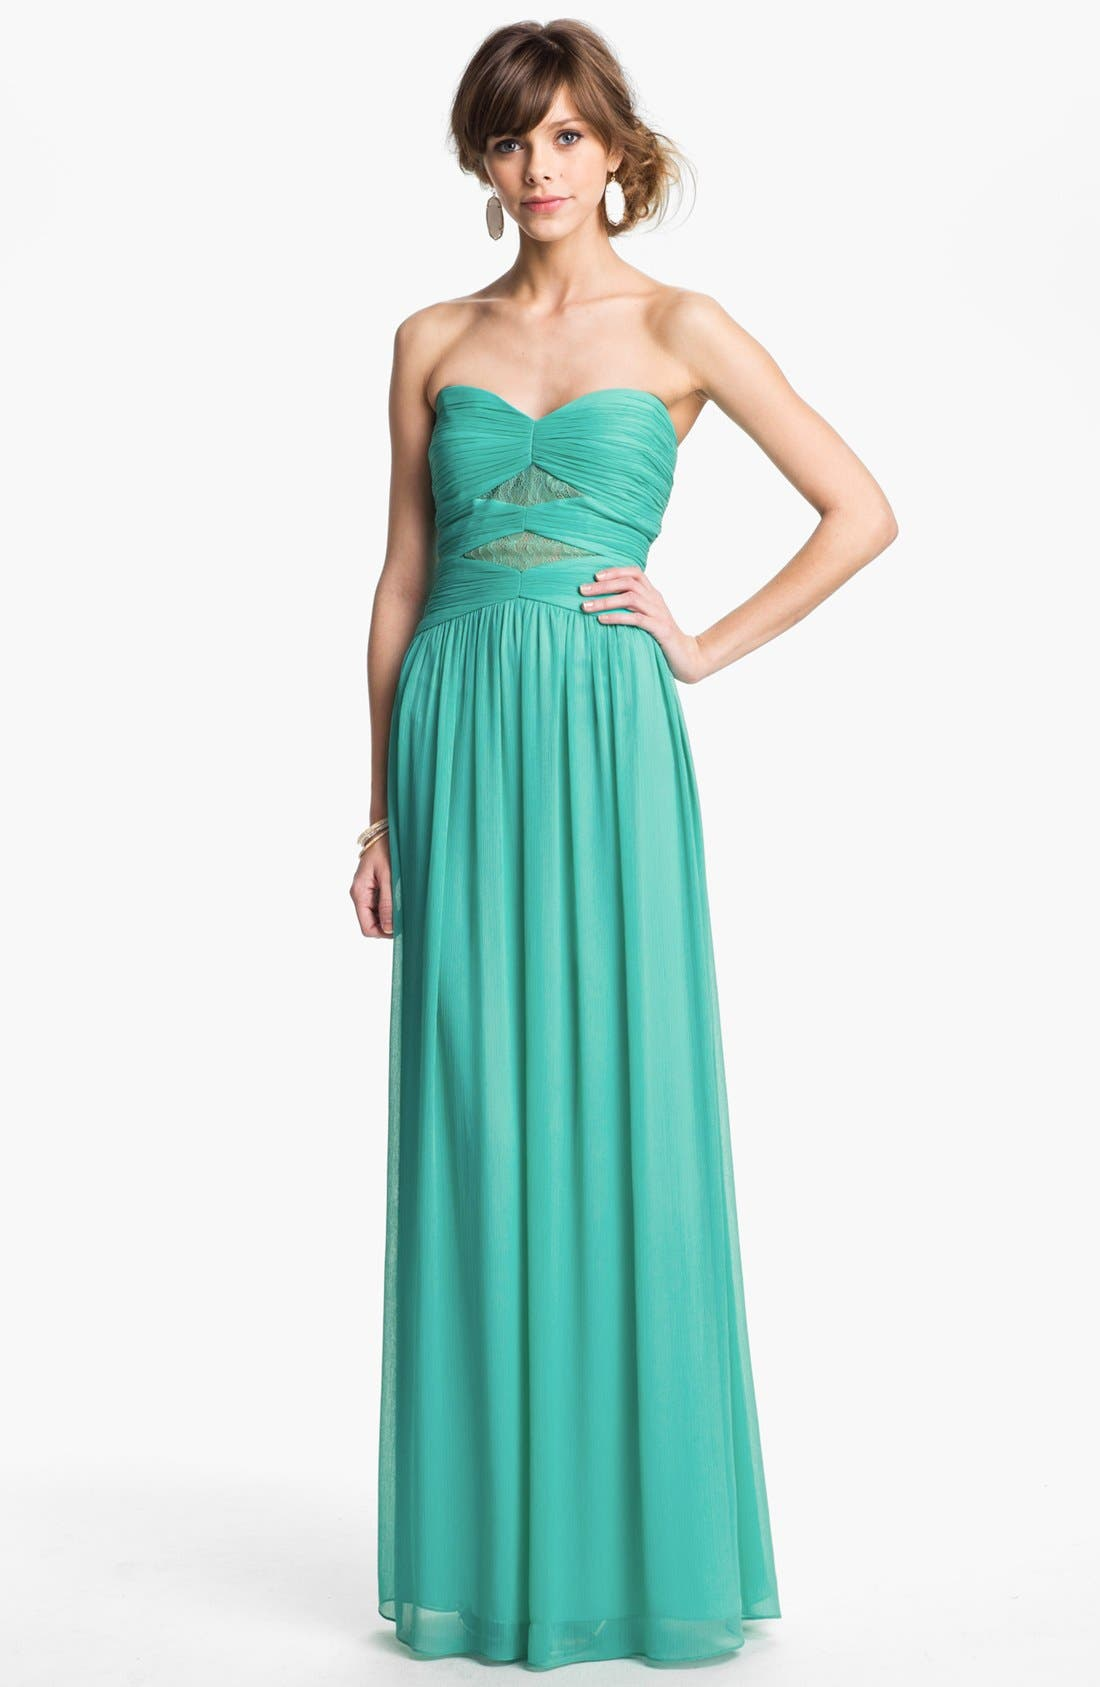 Main Image - Max & Cleo Lace Detail Crinkled Chiffon Gown